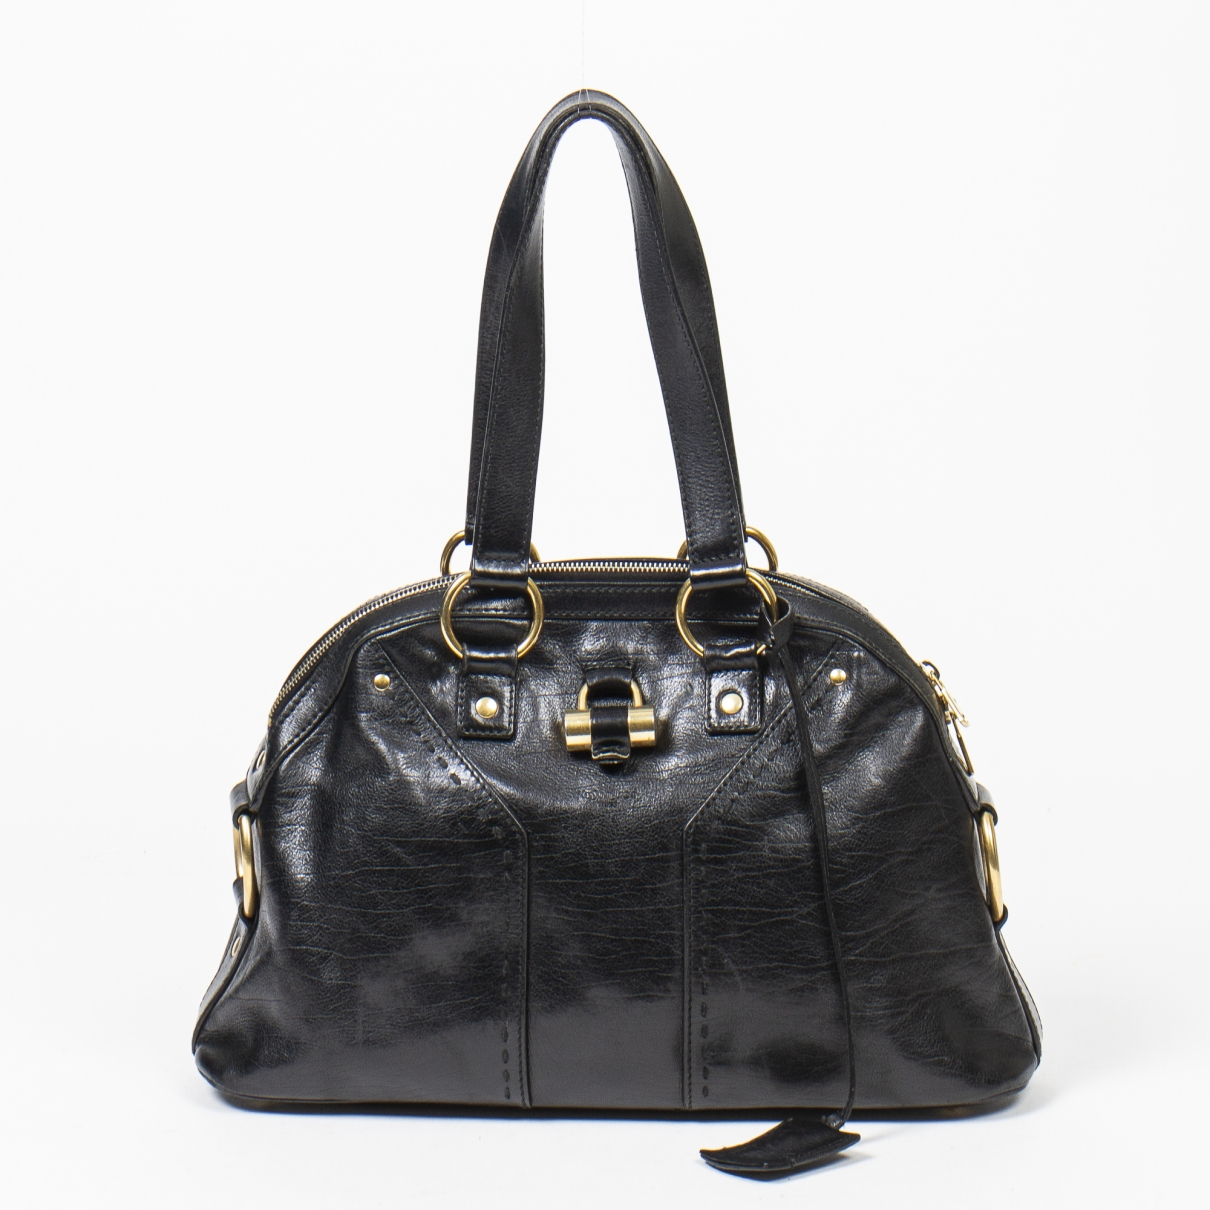 Yves Saint Laurent Muse Black Leather handbag for Women \N